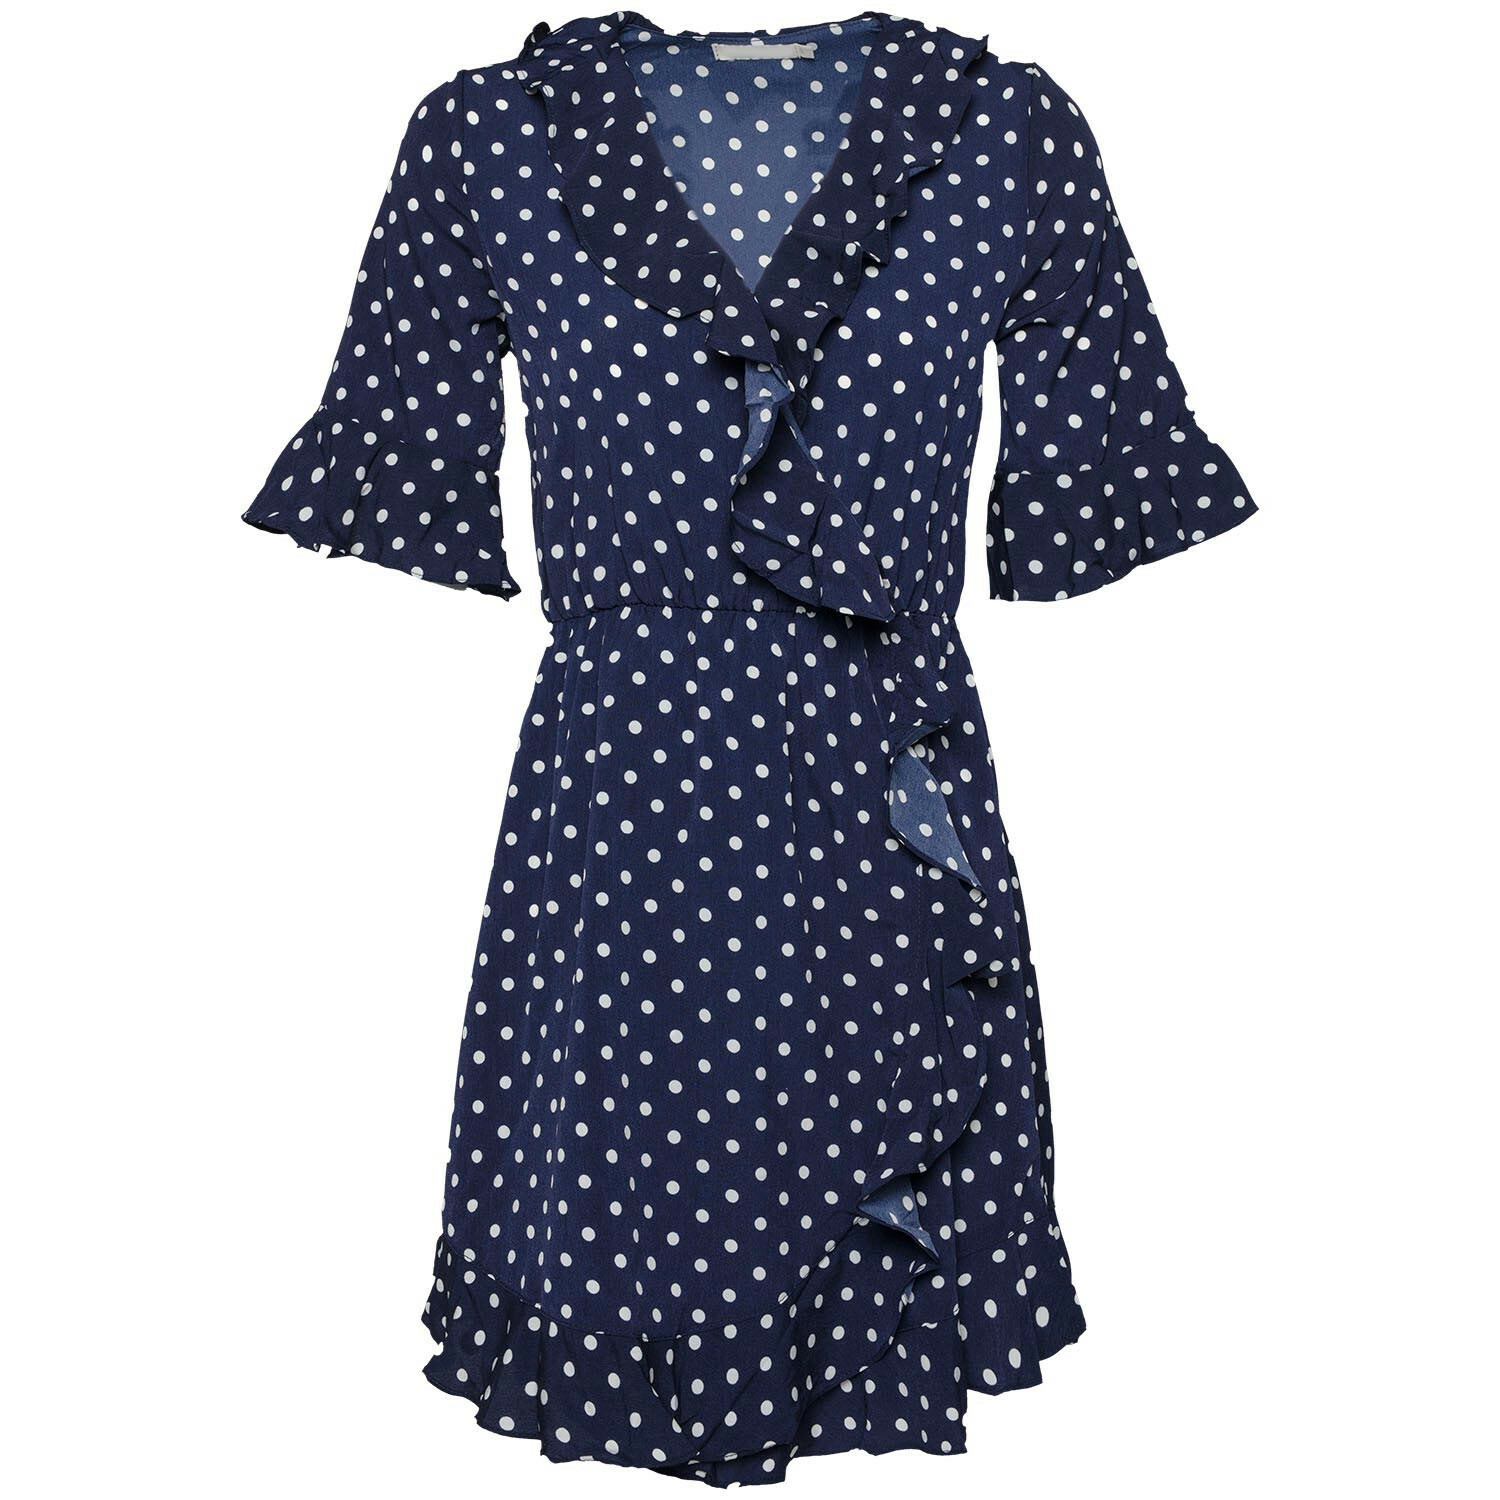 BLUE DOTTED DRESS